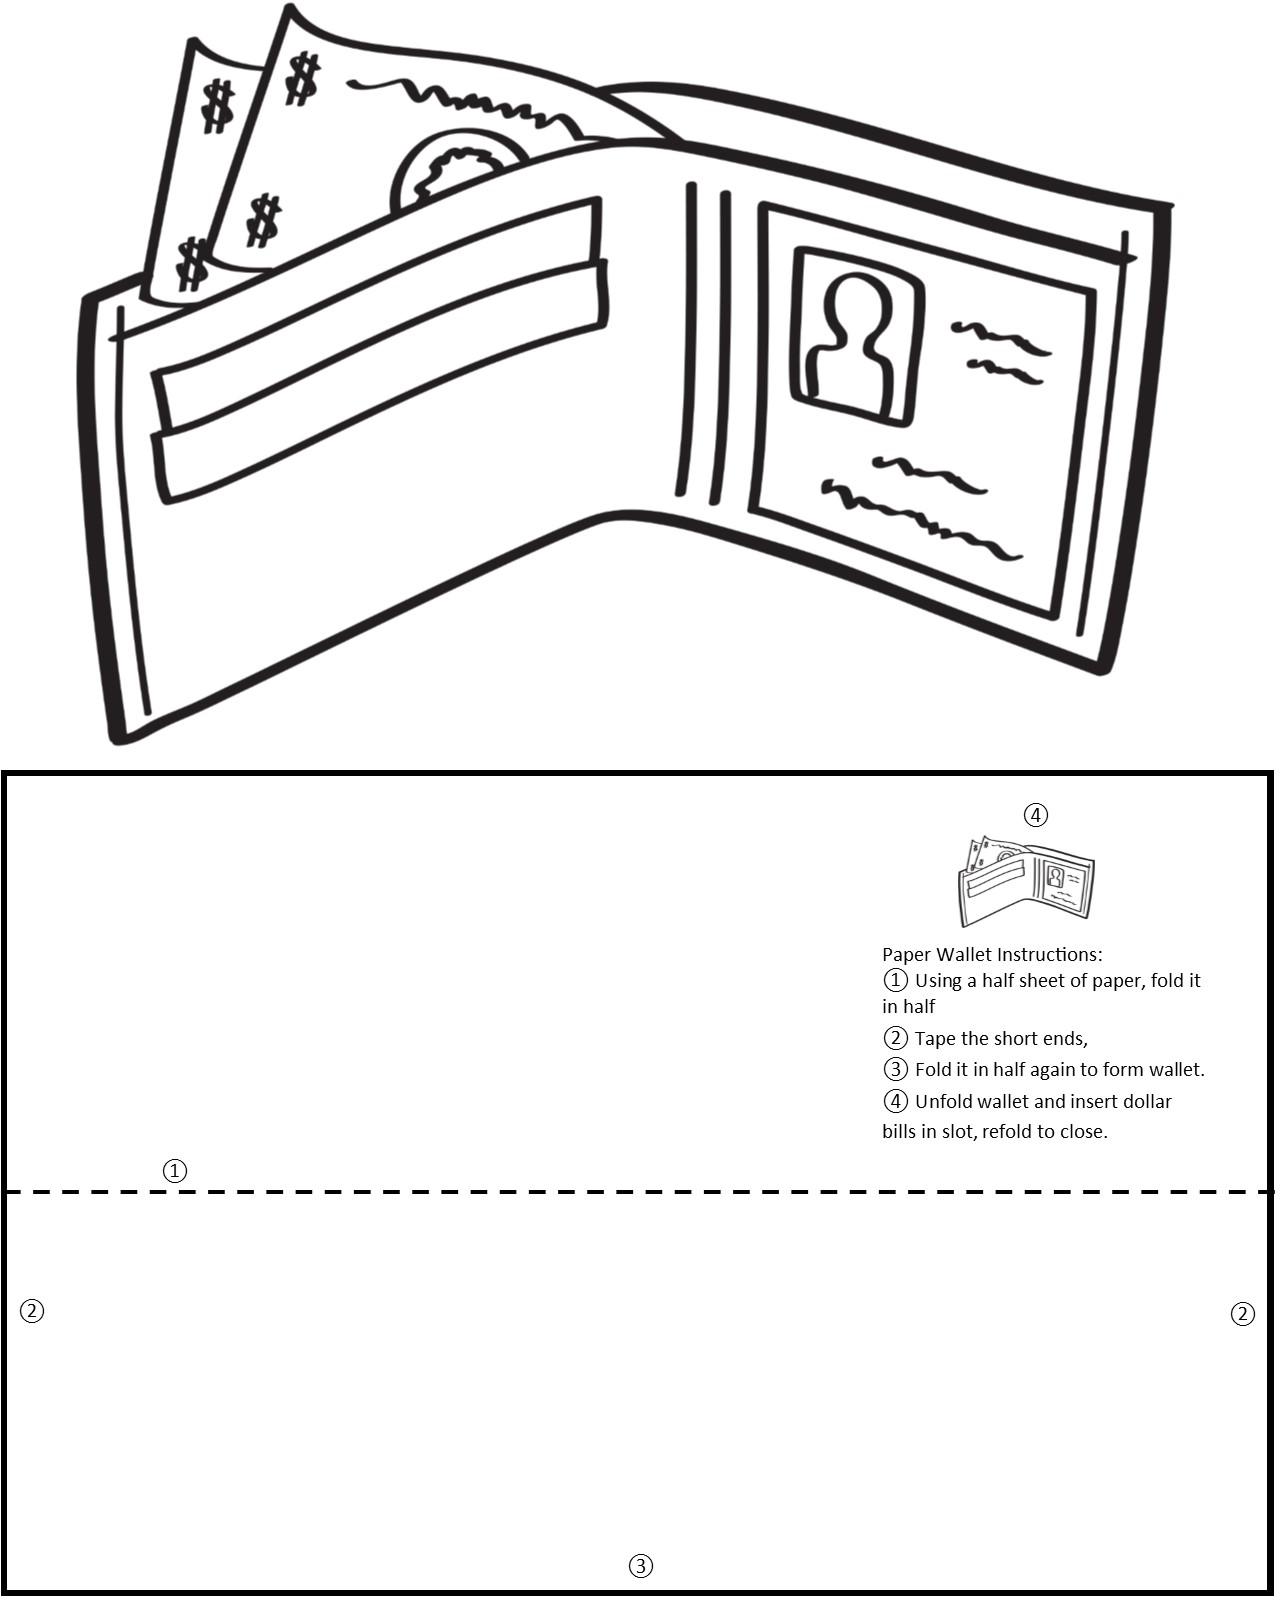 Wallet Graphic/Template